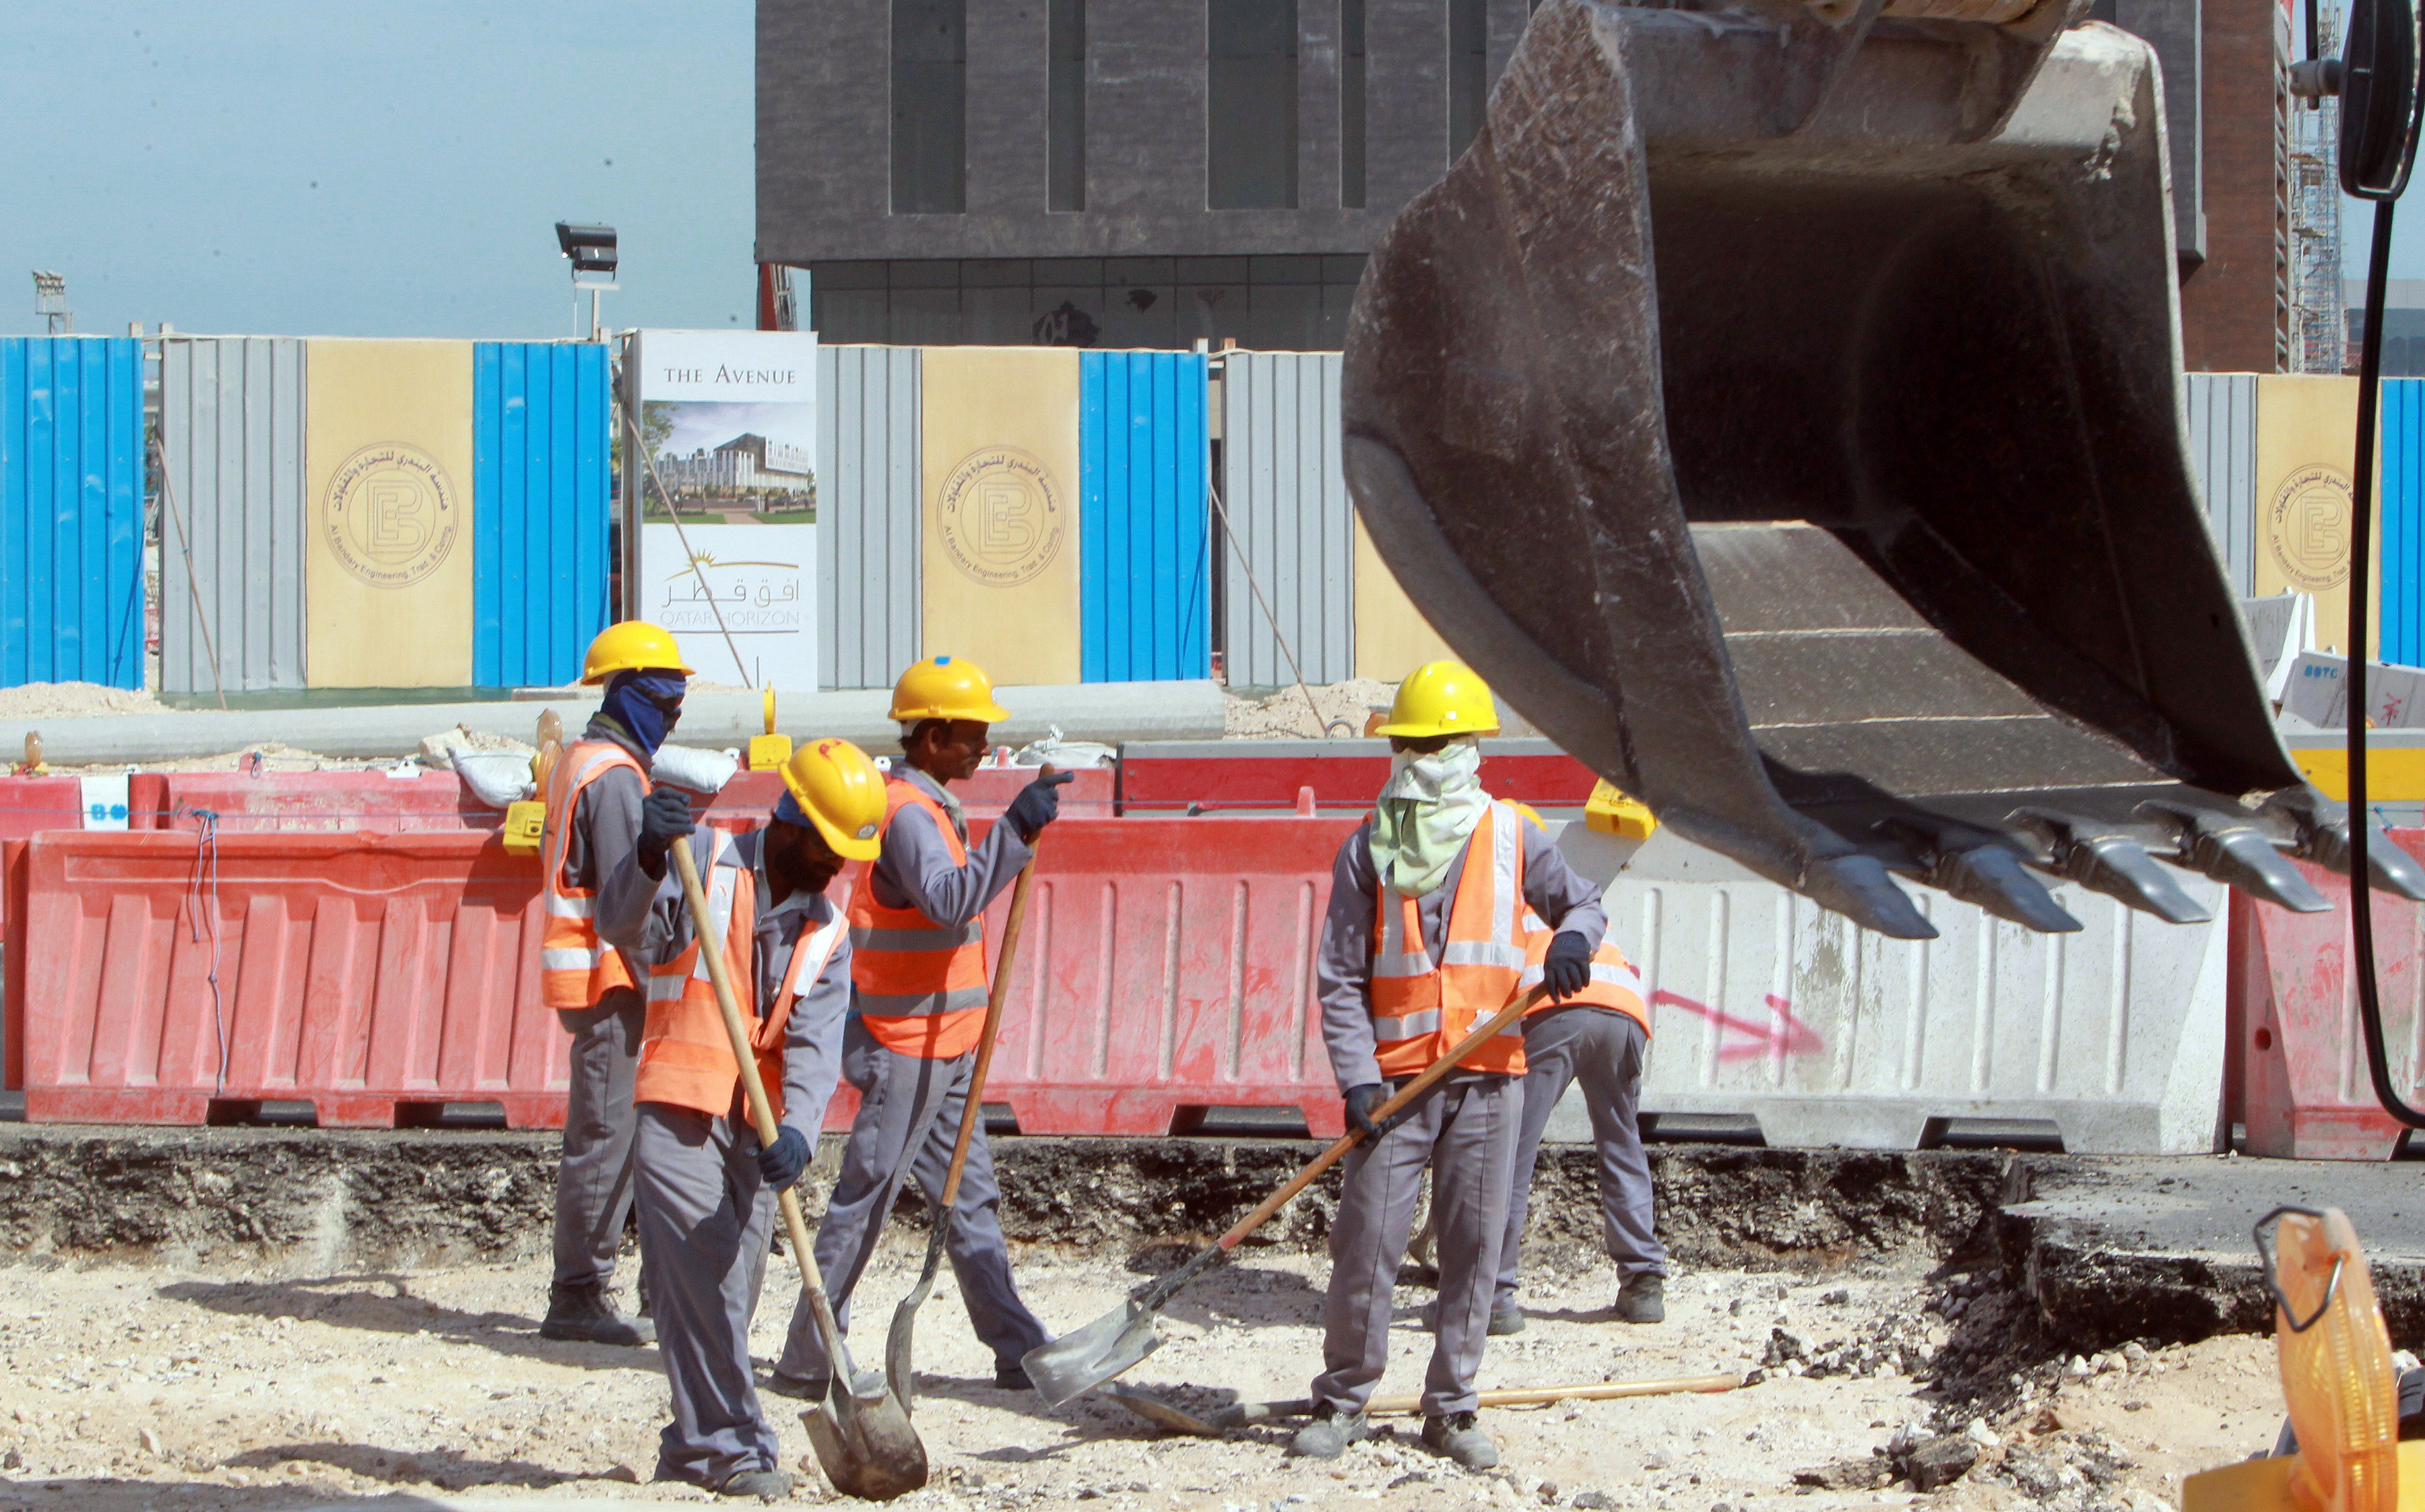 Workers are seen at a construction site in Doha, Qatar.